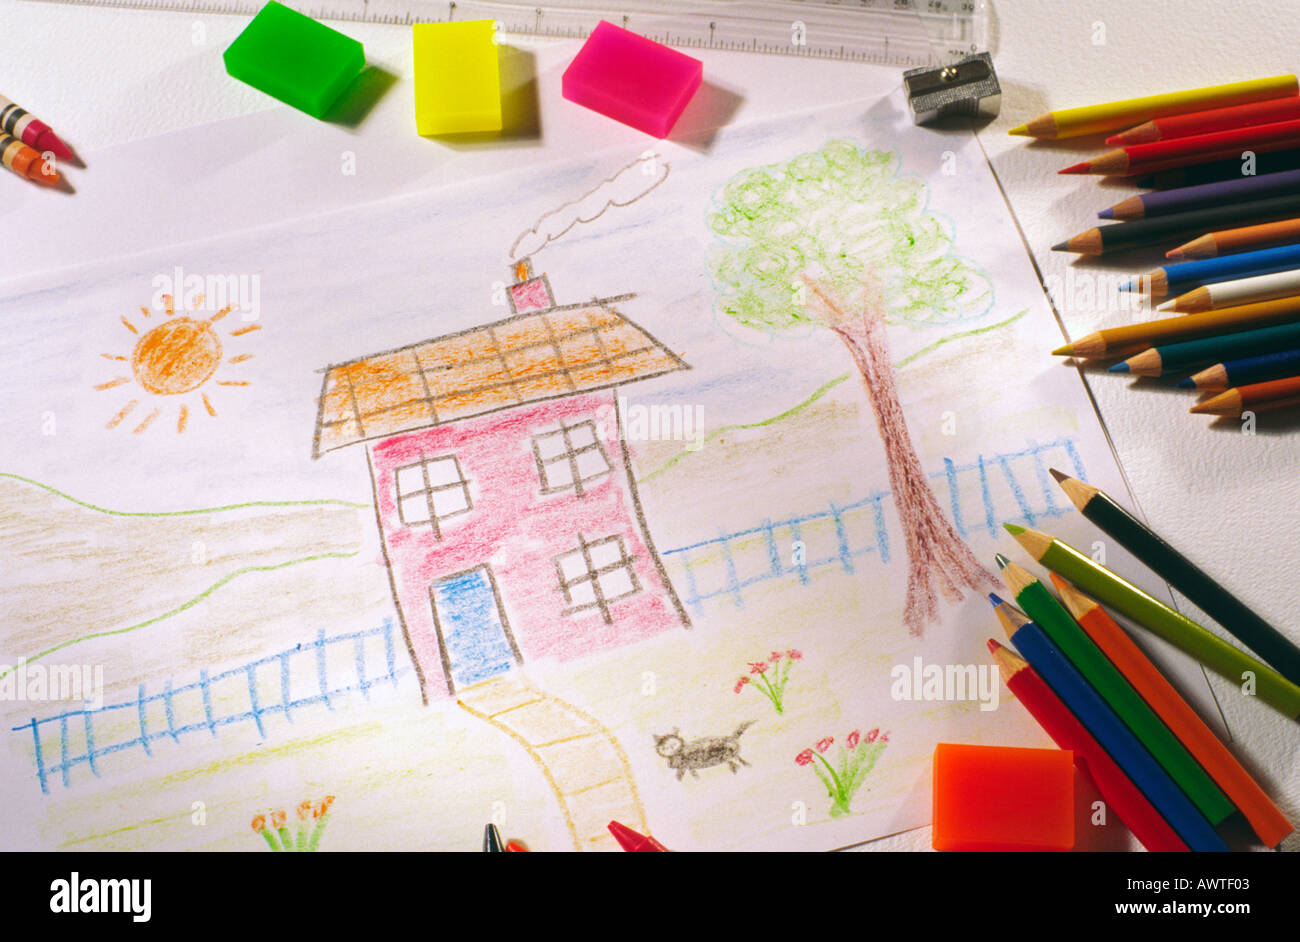 Childlike drawing of a house with coloured pencils and crayons